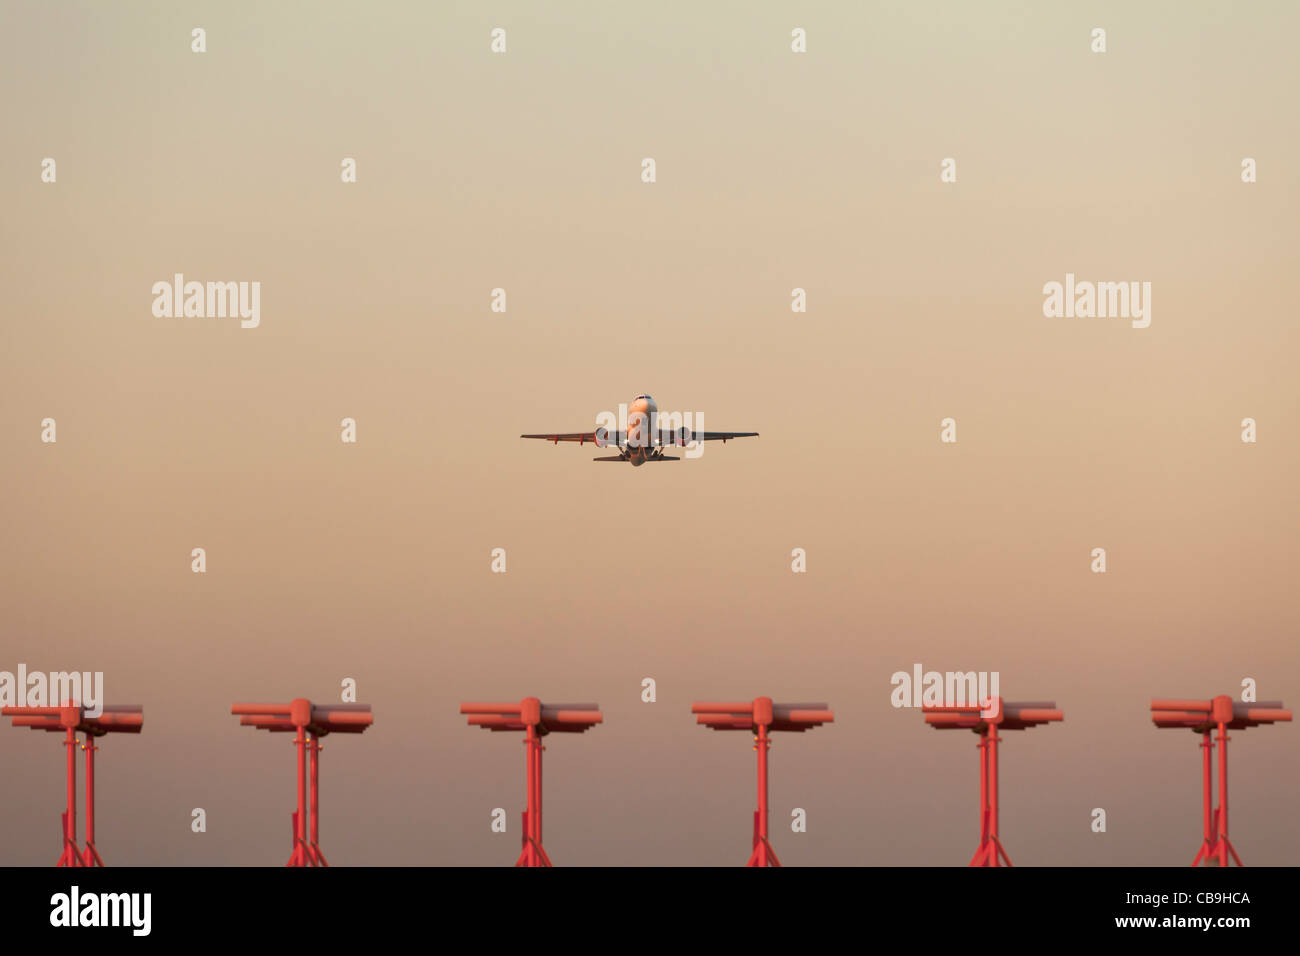 Airplane takeoff at sunset - Stock Image